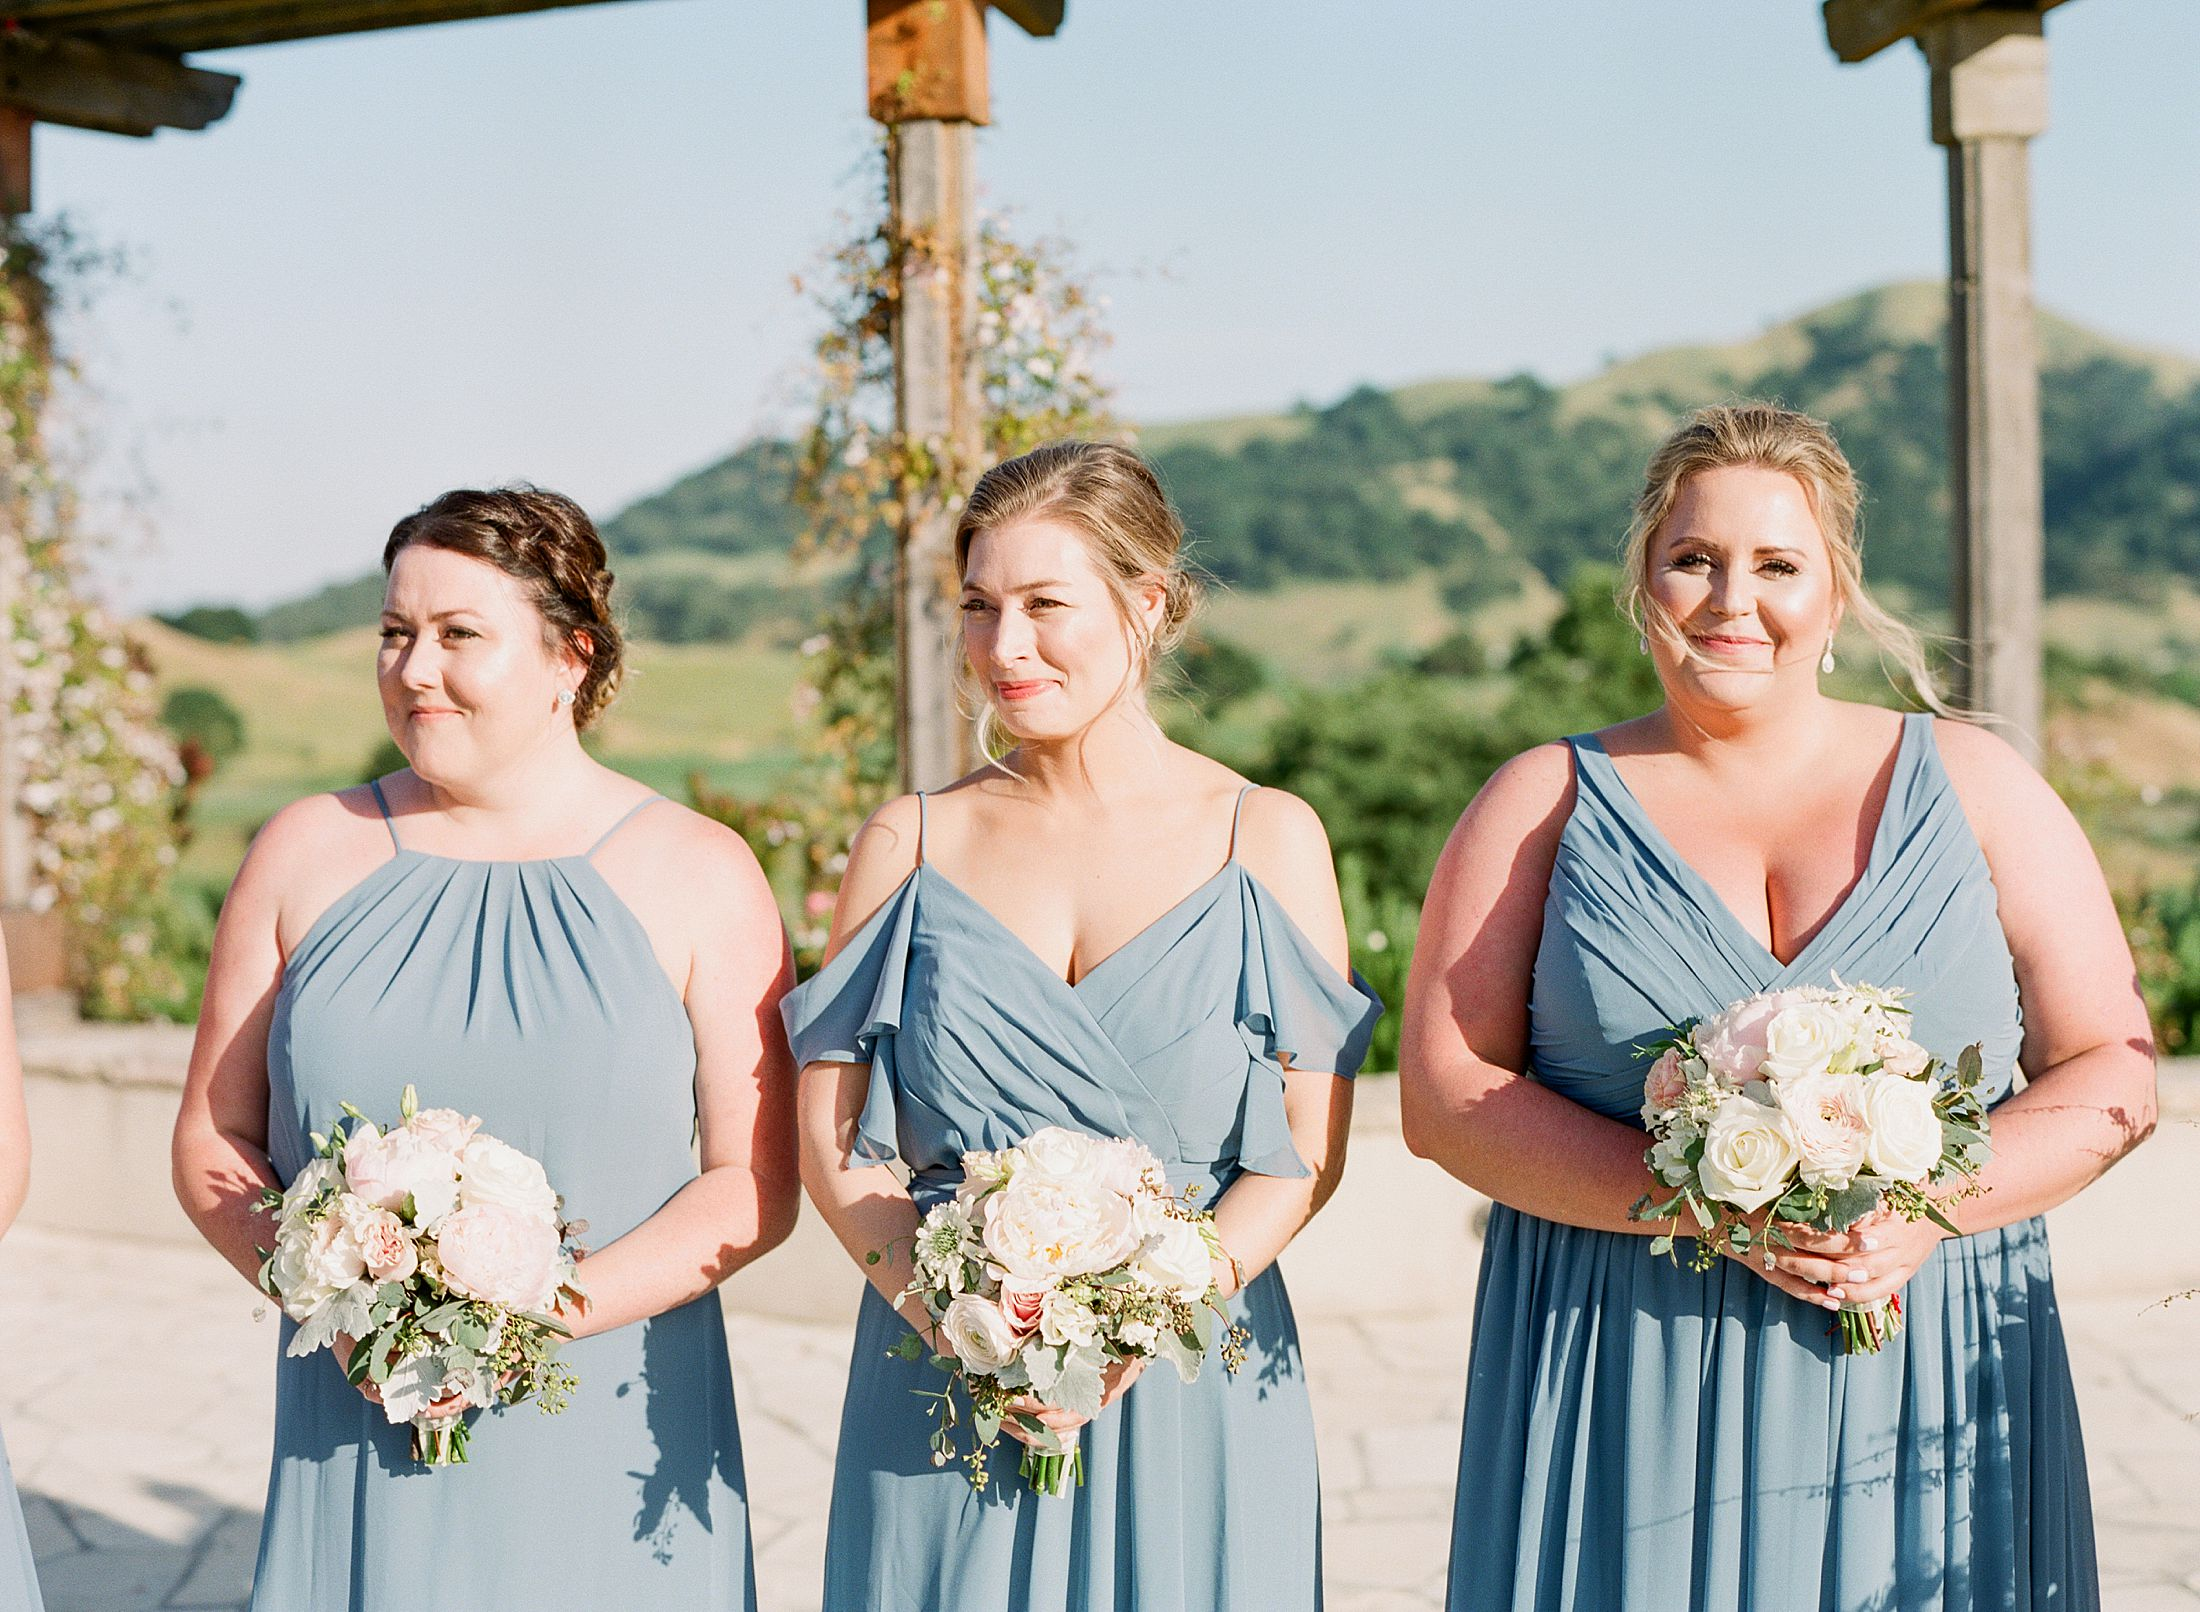 Clos LaChance Winery Wedding - Ashley Baumgartner - Kat & Kurt - Morgan Hill Wedding - Winery Wedding - Bay Area Photographer - Sacramento Wedding Photographer_0043.jpg